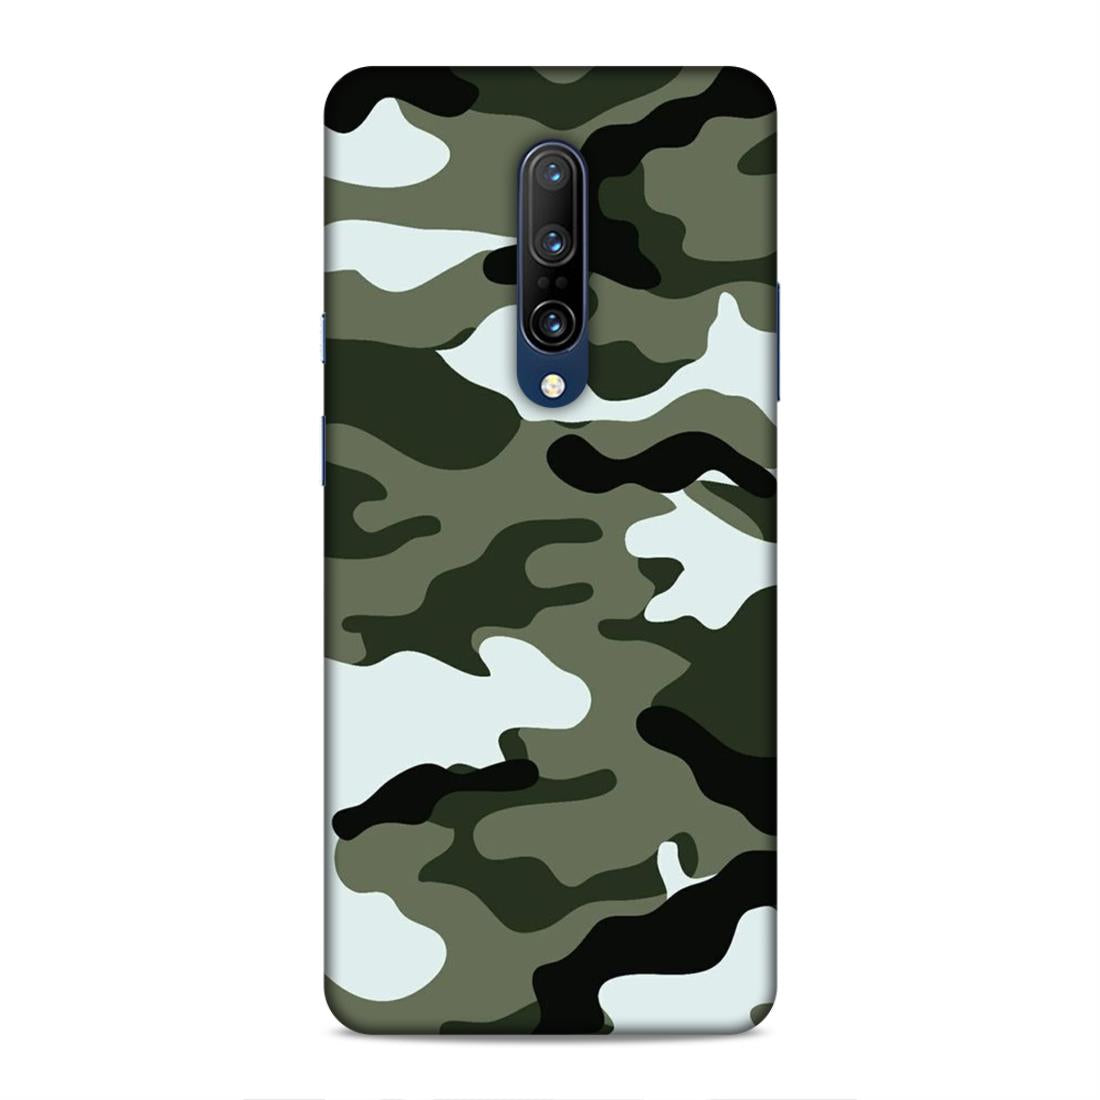 Phone Cases,Oneplus Phone Cases,Oneplus 7 Pro,Gaming